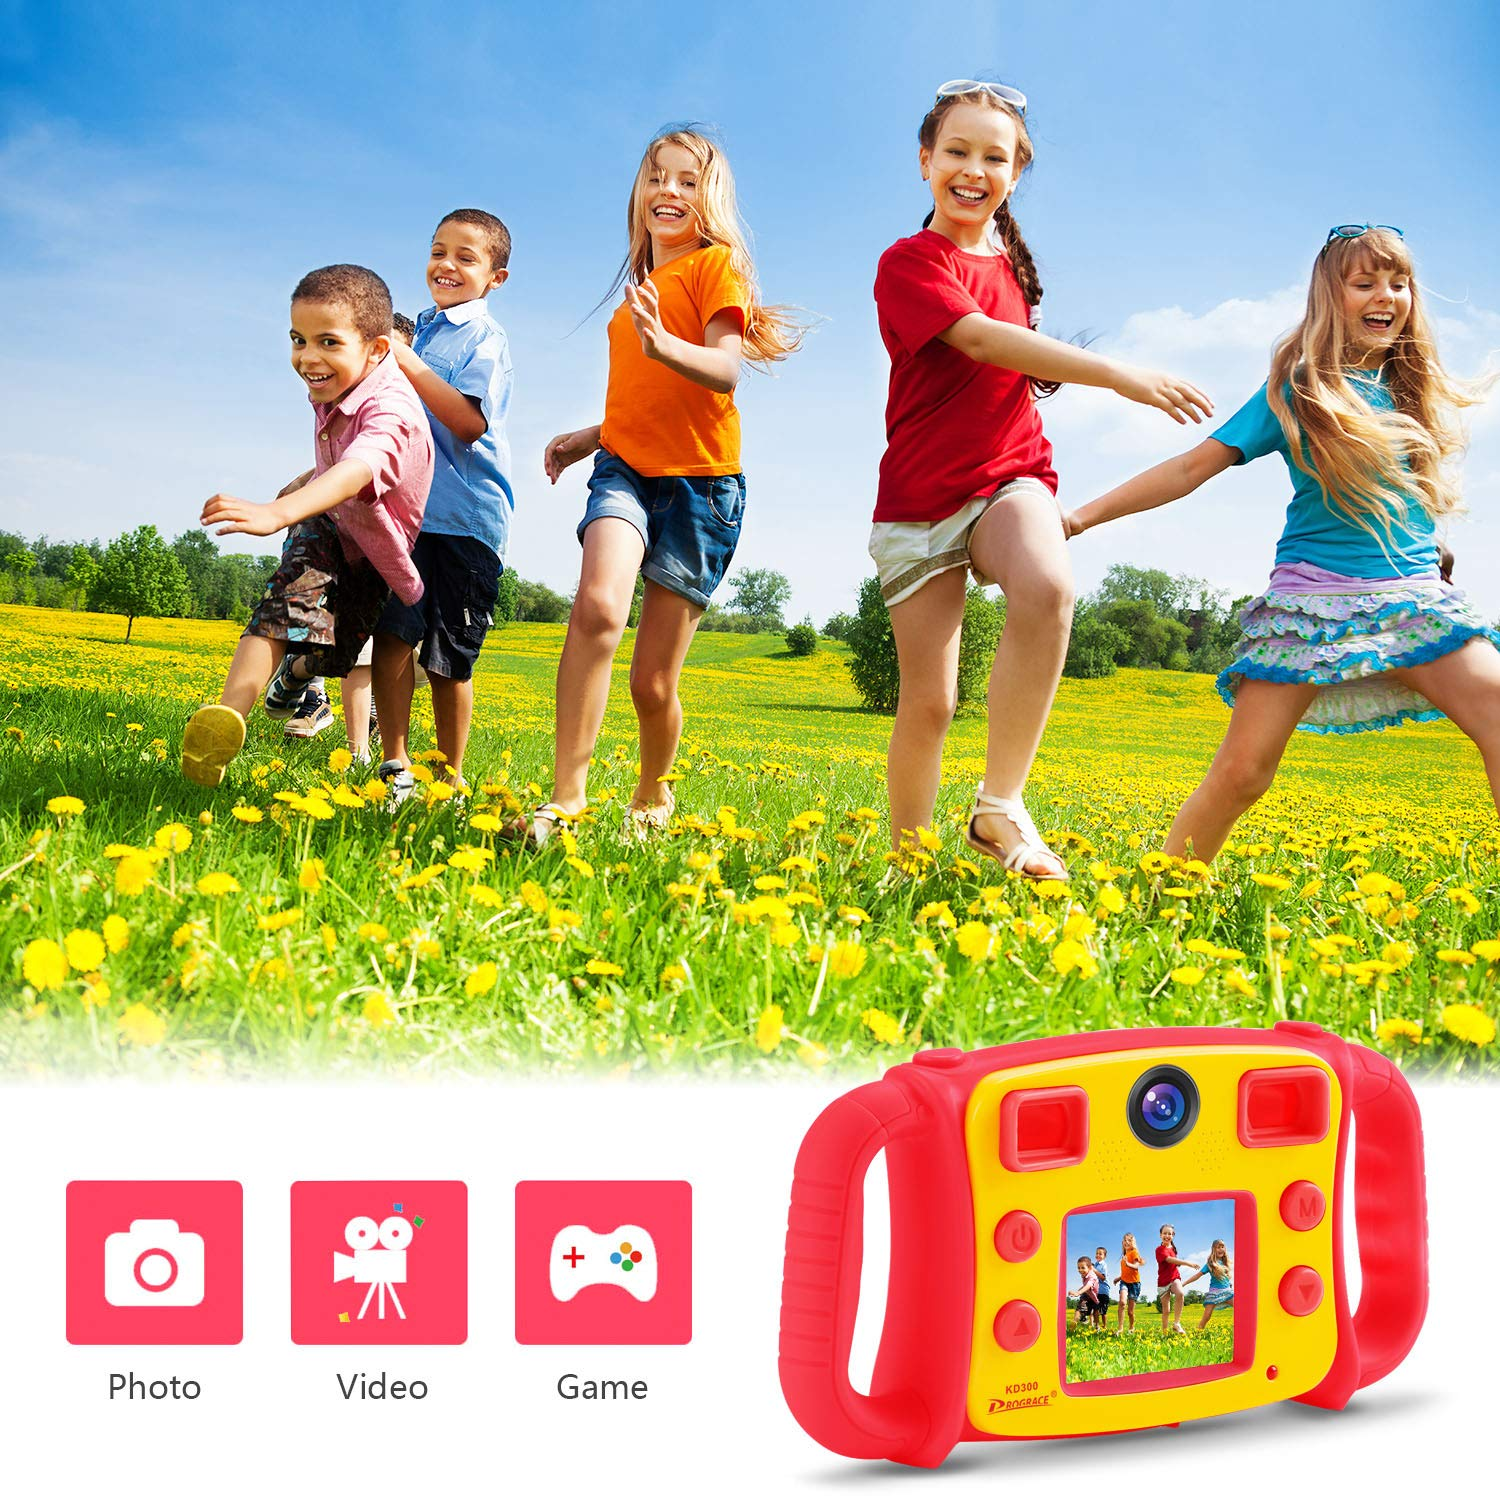 Prograce Kids Camera Dual Camera Selfie Digital Video Camera Camcorder for Boys Girls with 4X Digital Zoom, Flash Light and Funny Game(Red) by Prograce (Image #3)